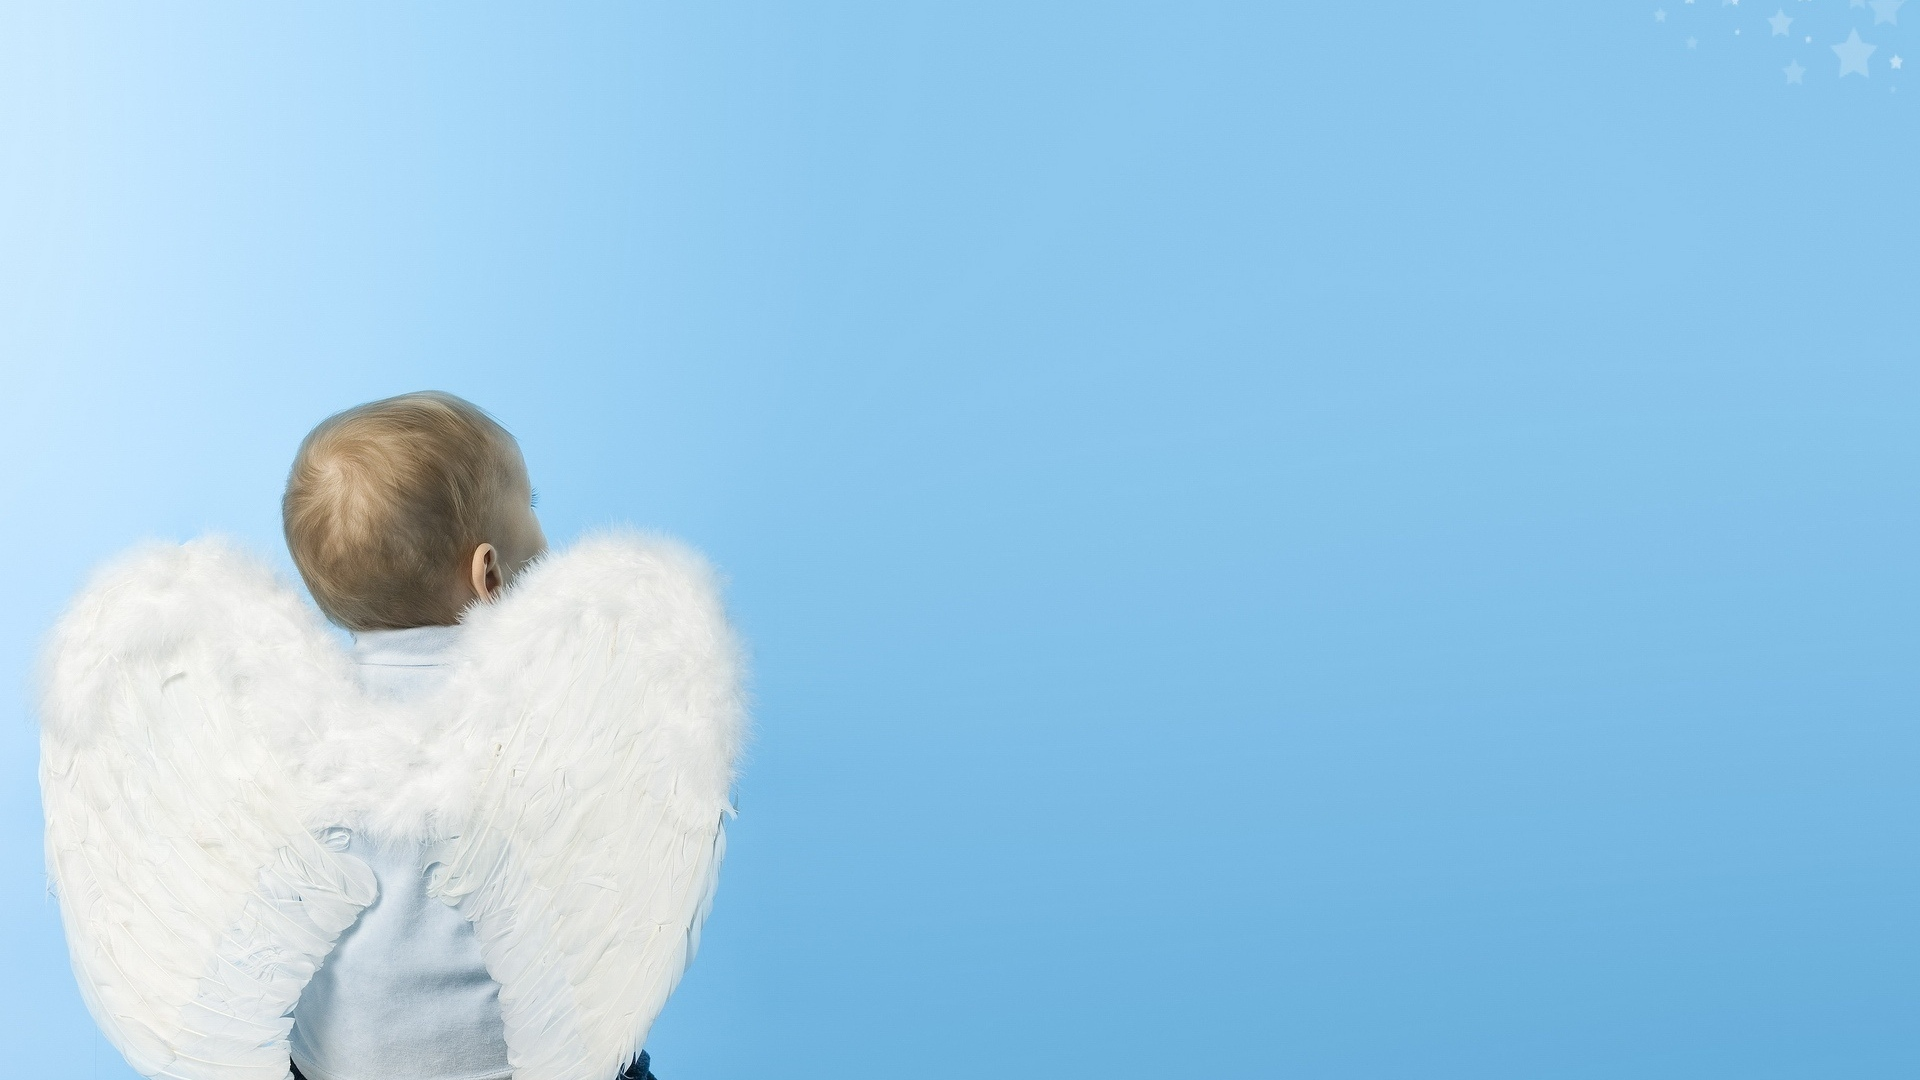 download wallpaper 1920x1080 baby, child, wings, angel full hd 1080p